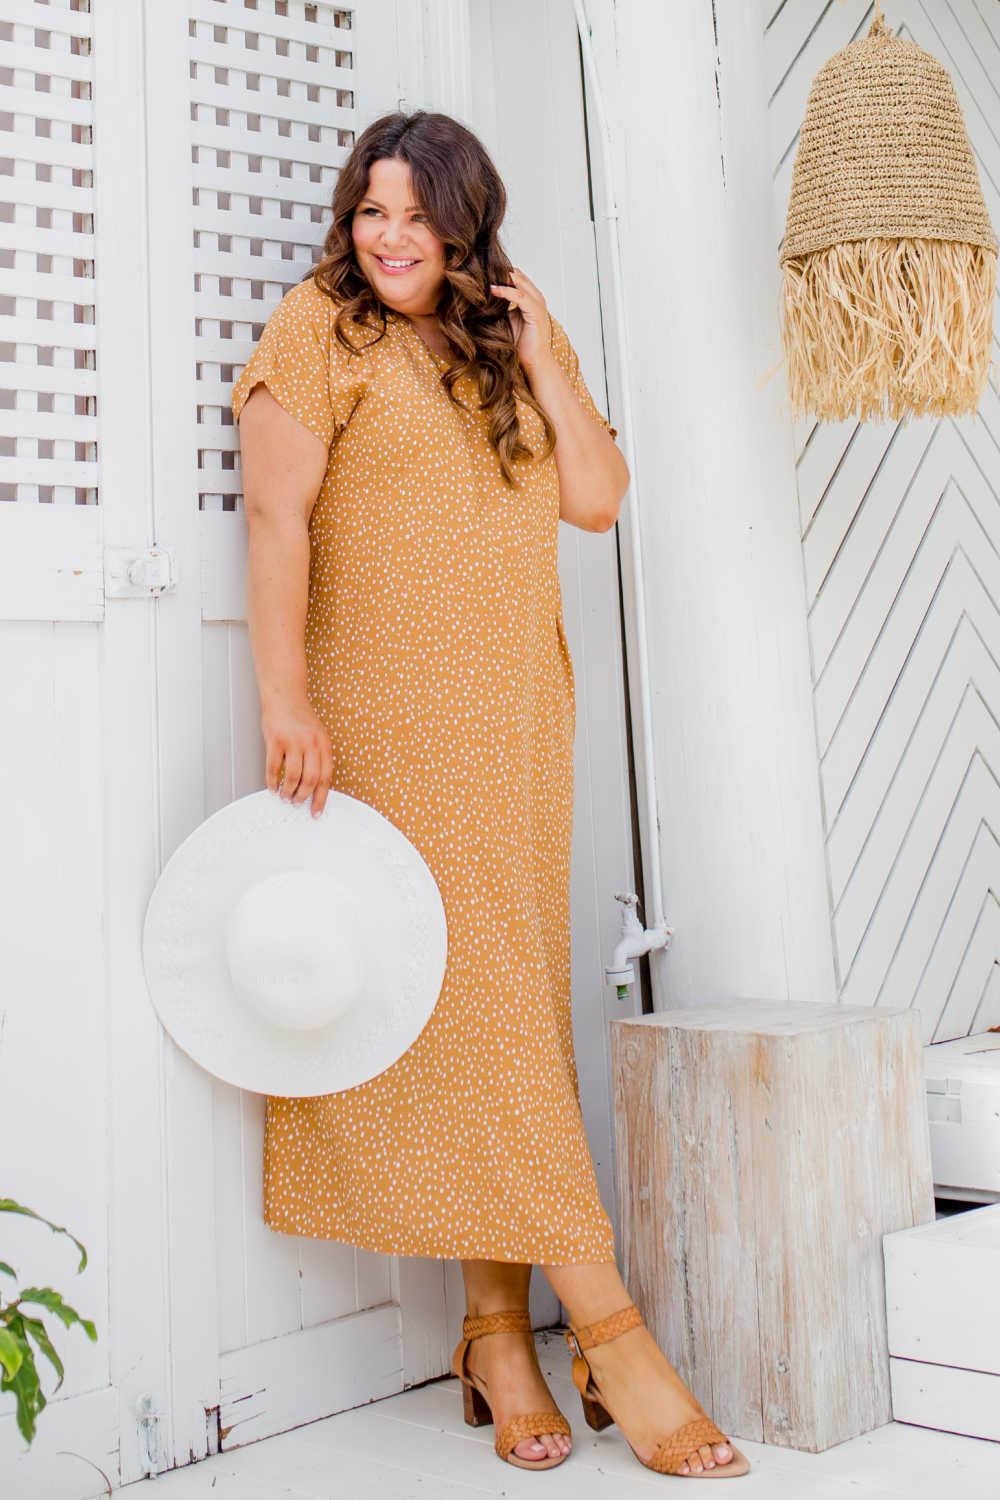 long-summer-dress-caramel-white-polka-dot